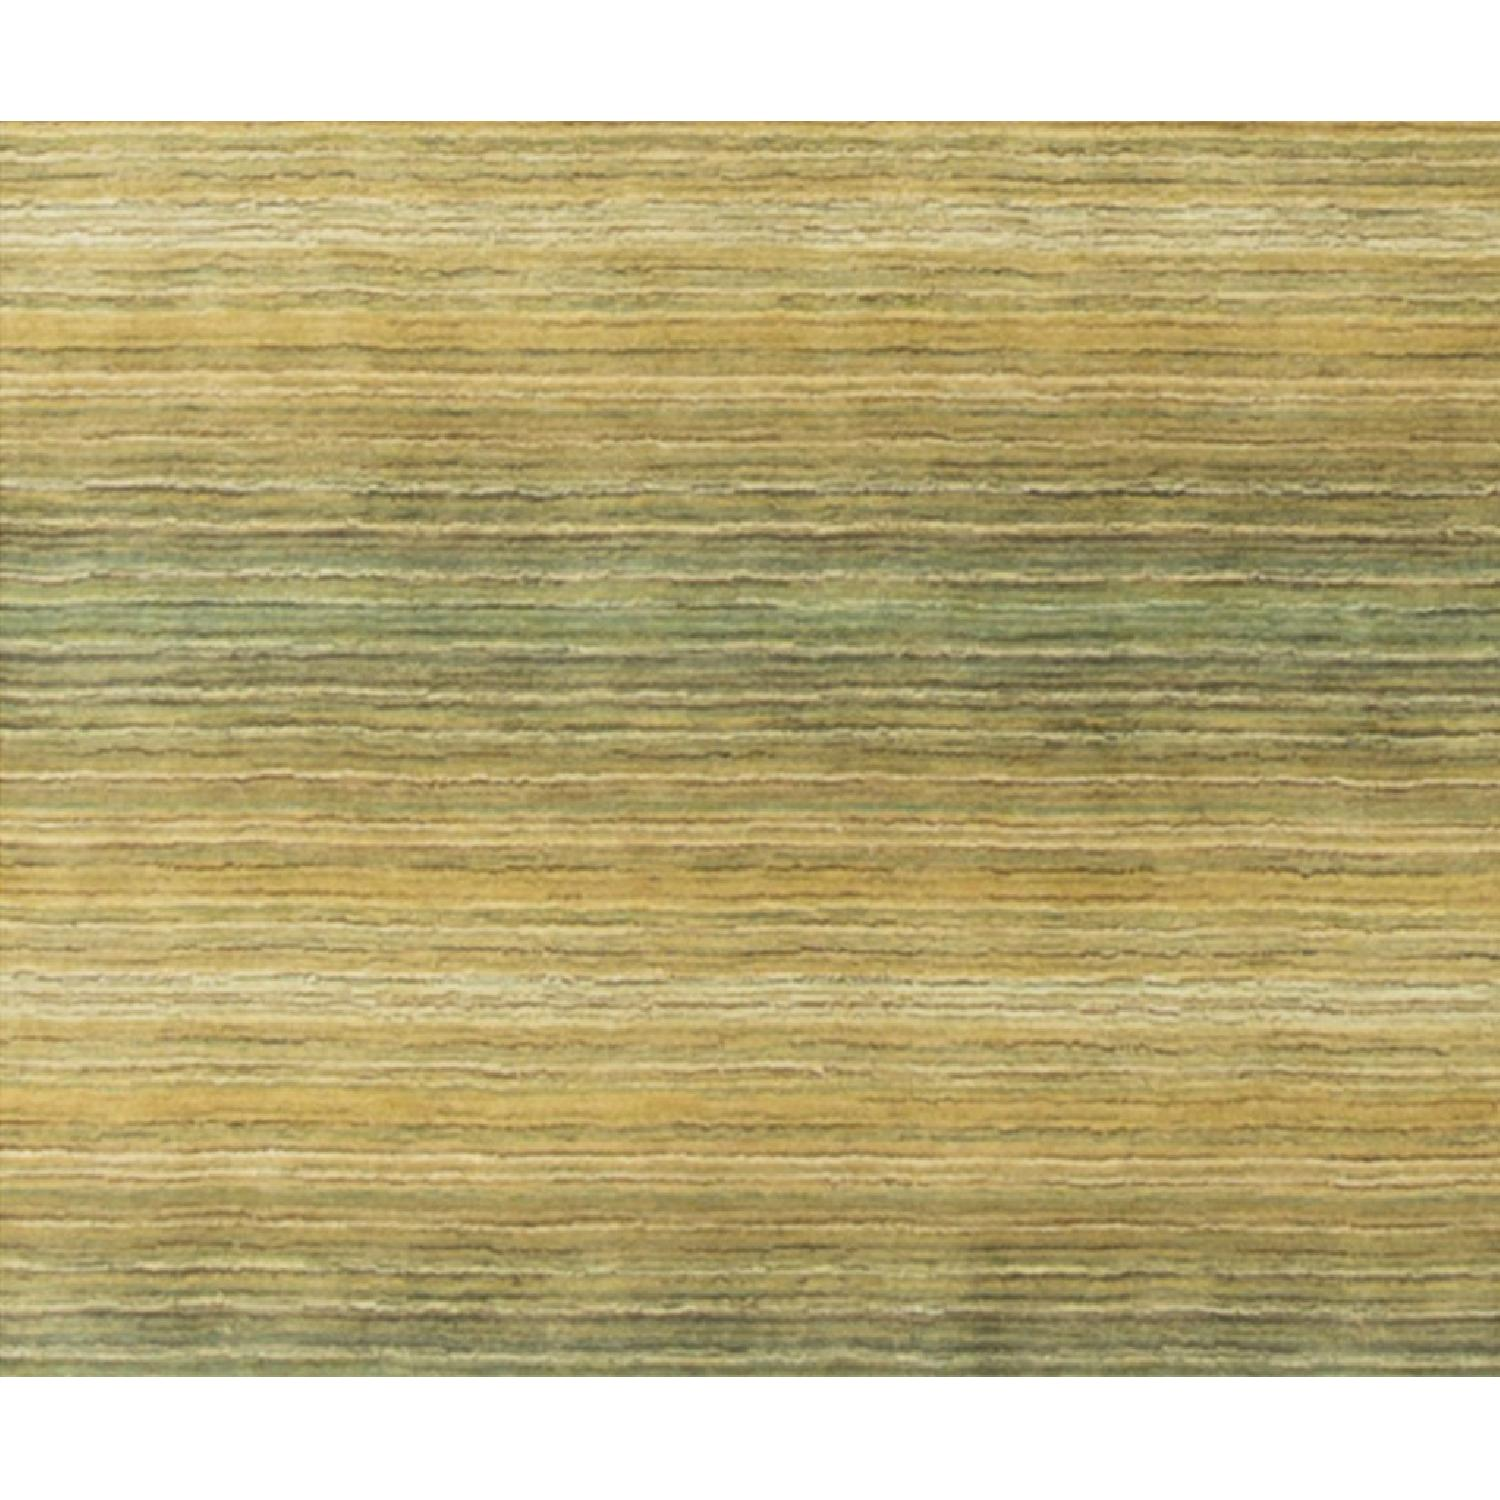 Modern Contemporary Hand Knotted Wool Rug in Beige/Green - image-3